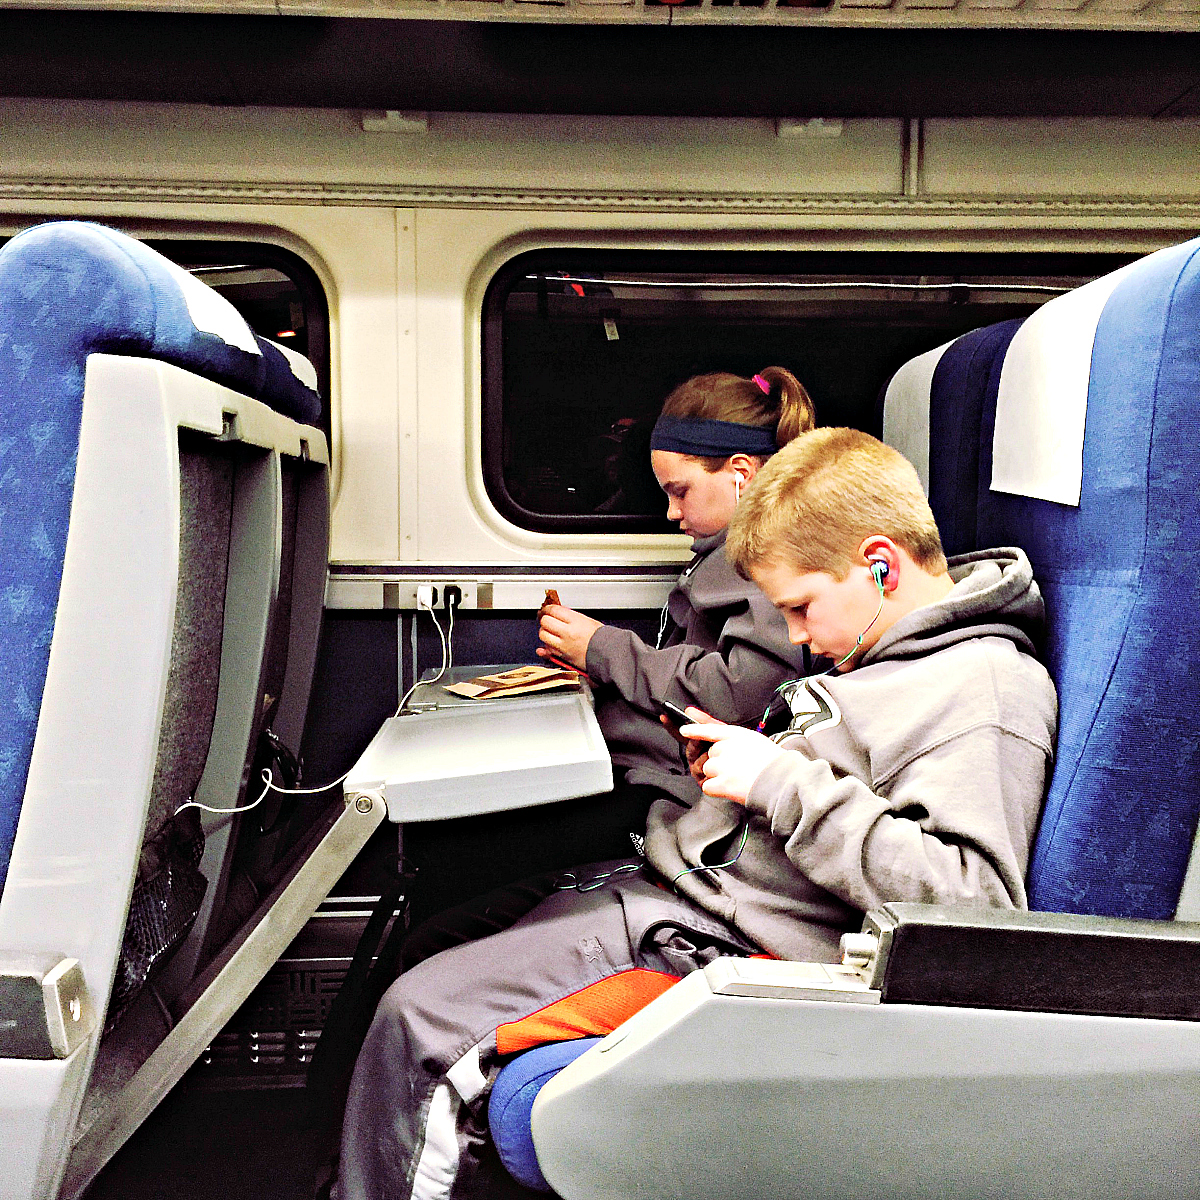 Electronics welcome on Amtrak with plug and play stations. Photo: Becky Davenport, Budget Traveling Mom